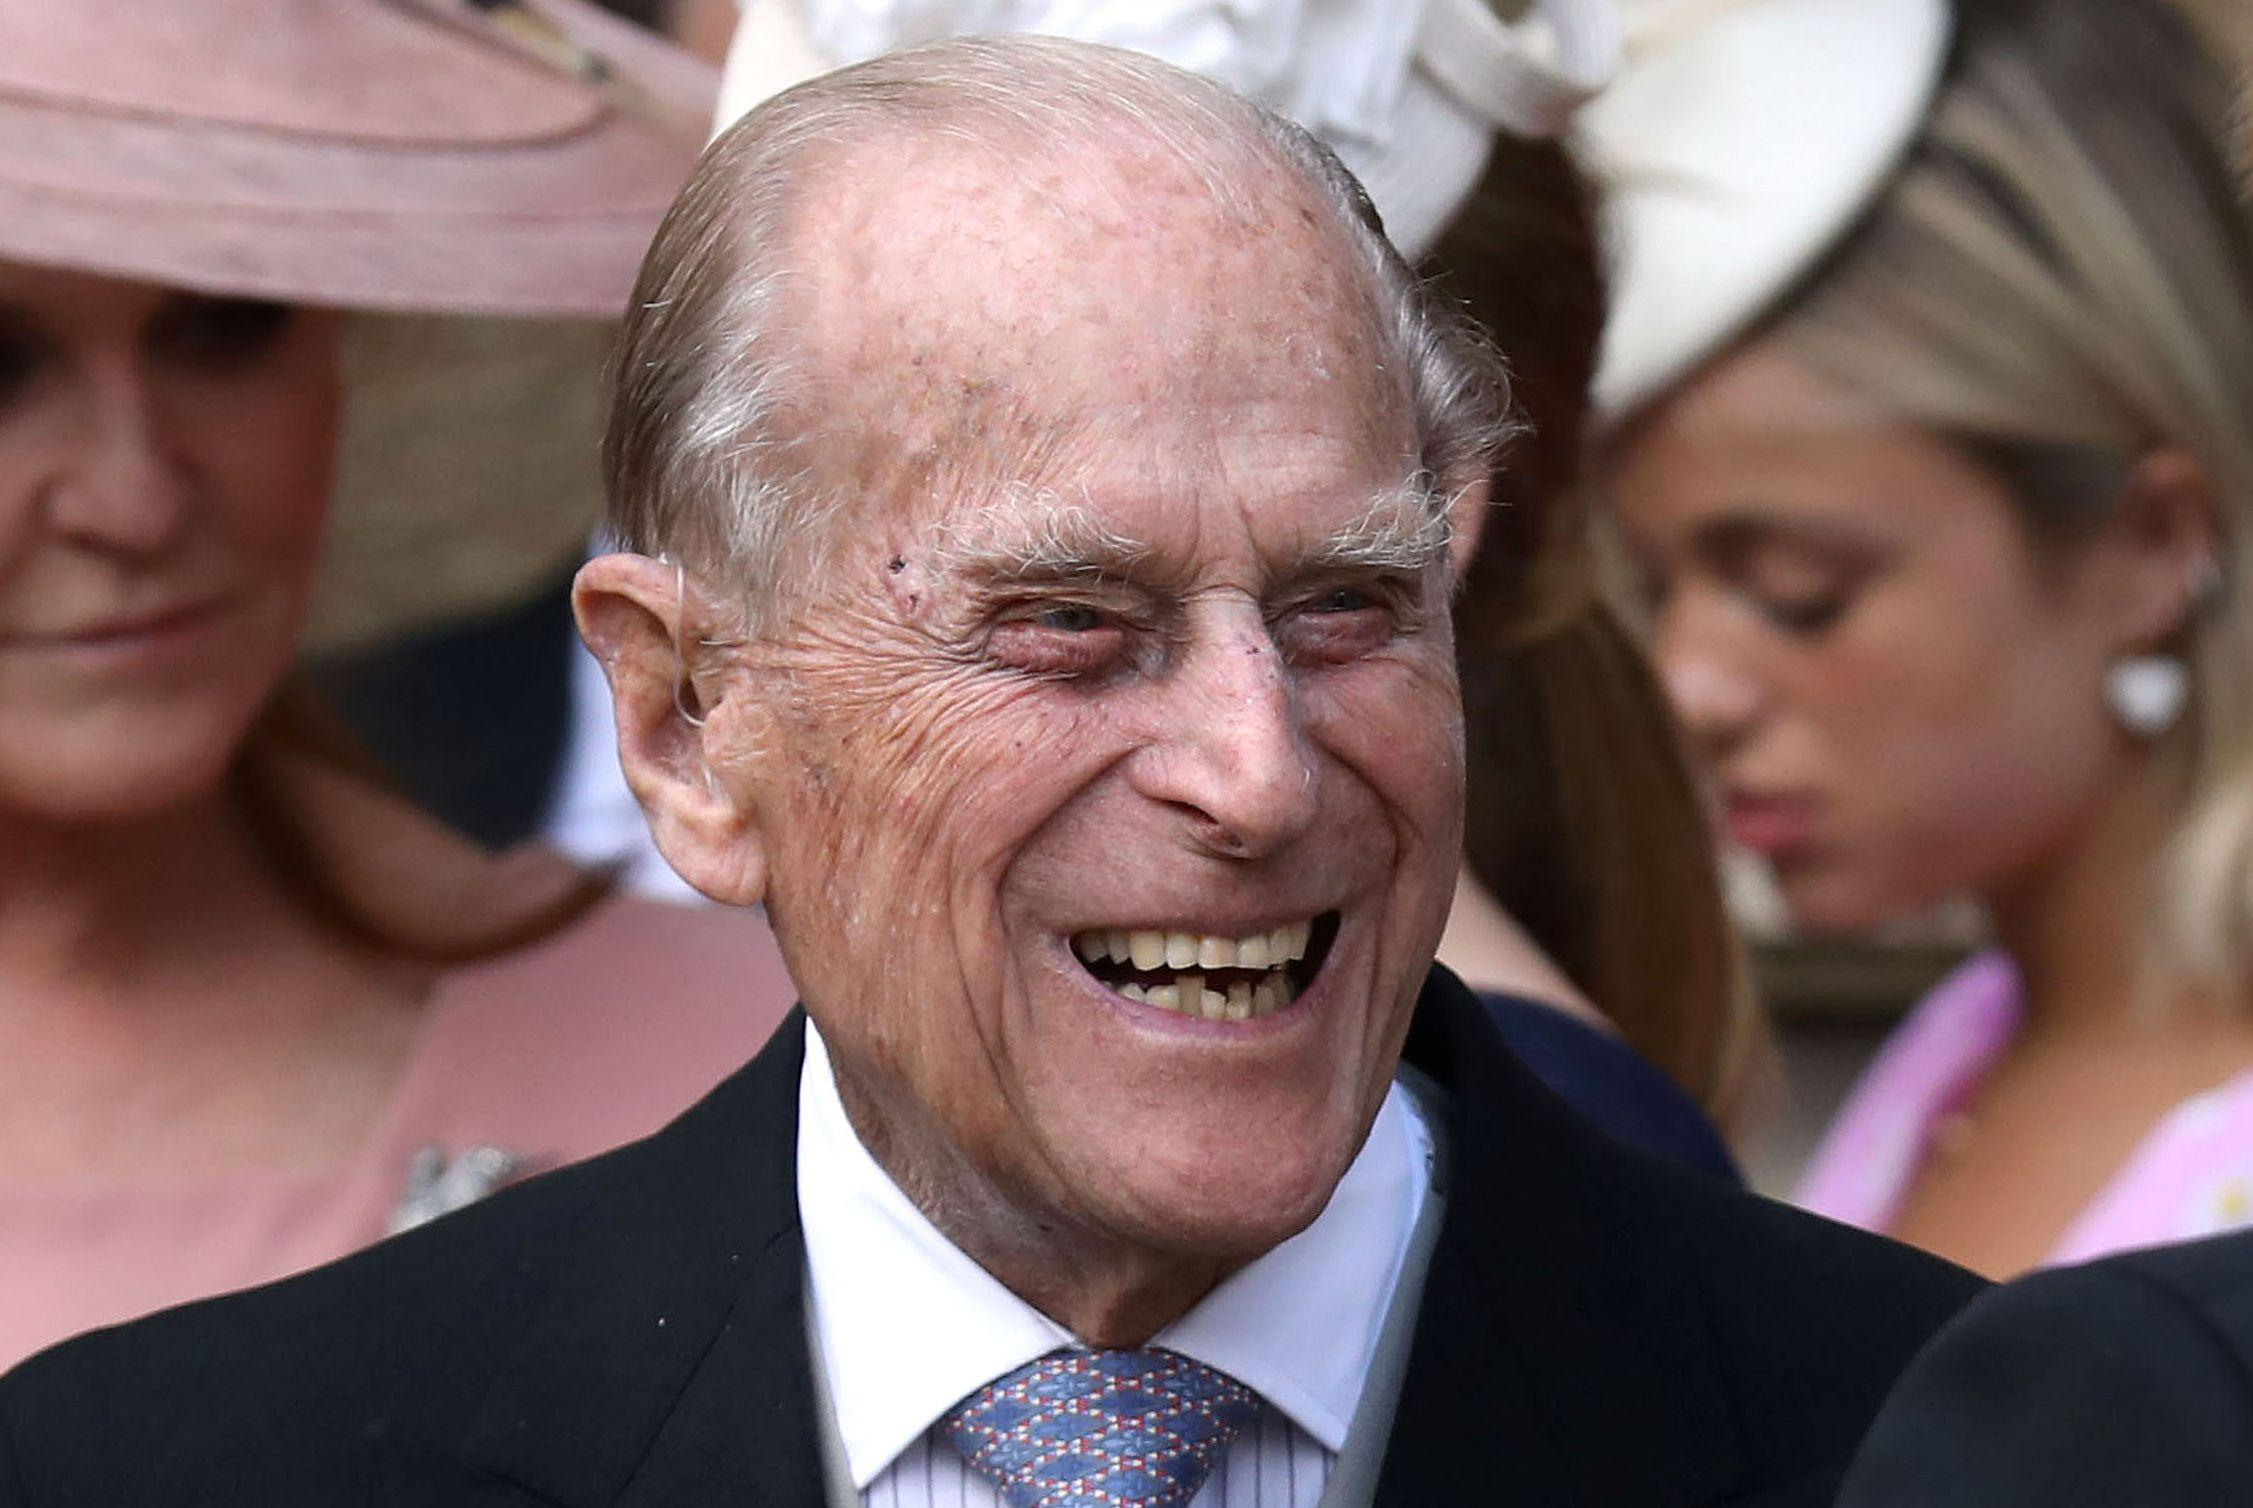 Prince Philip Unrecognizable in 'Worn and Tattered' Clothing: Mistaken for the Gardener - Yahoo Entertainment